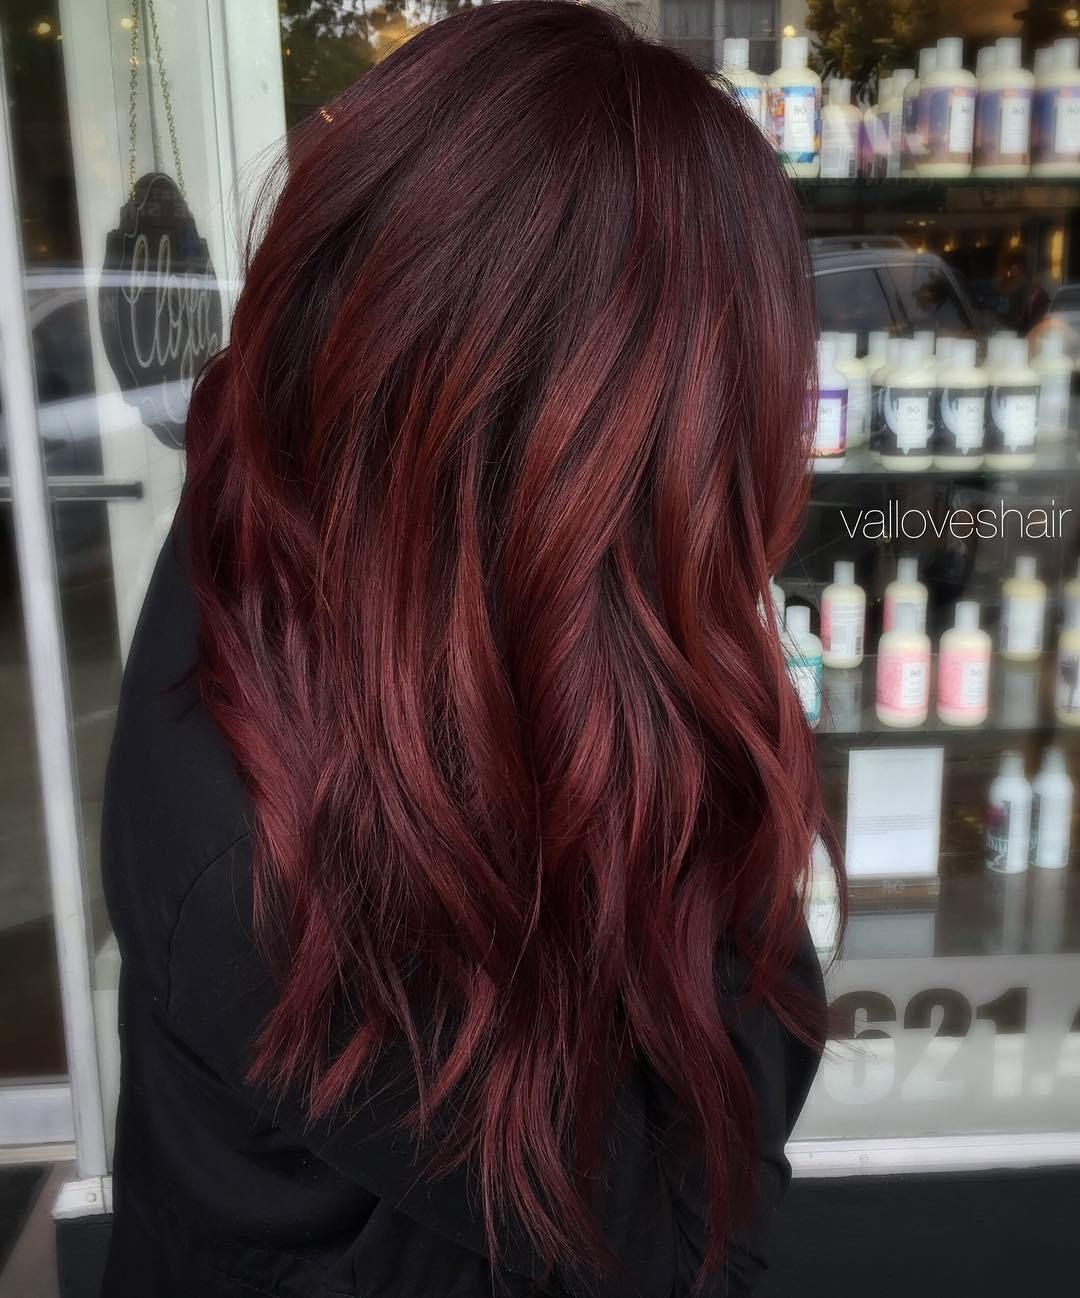 Reddish Brown Hair Colors Best Way To Color Your Hair At Home Check More At Http Www Fitnursetaylo Hair Color Auburn Dark Burgundy Hair Hair Color Burgundy